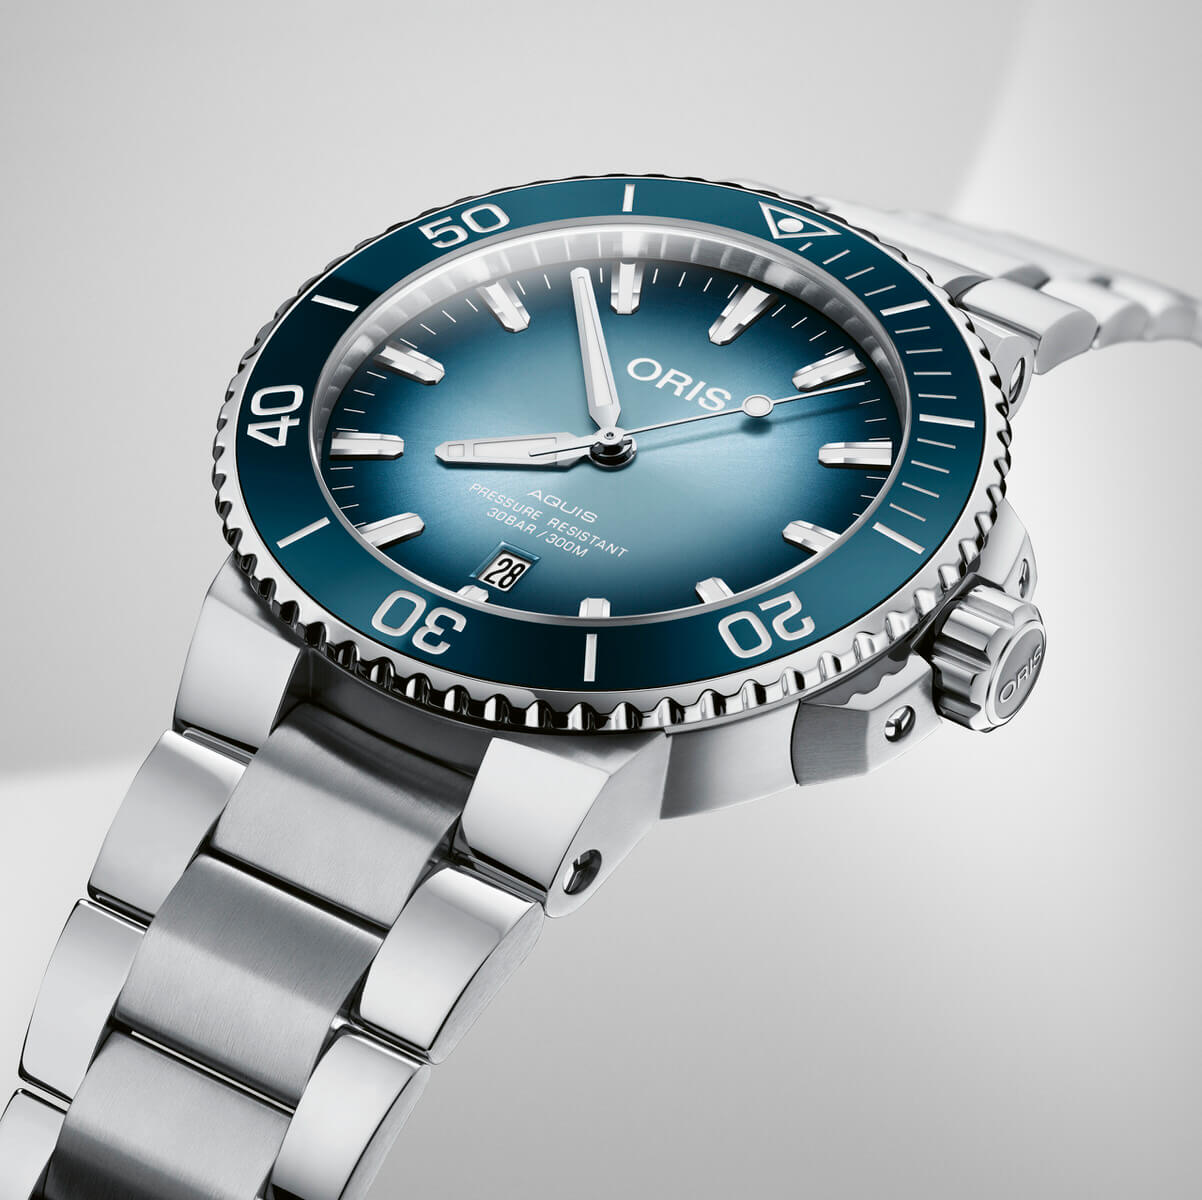 Oris Lake Baikal Limited Edition beauty